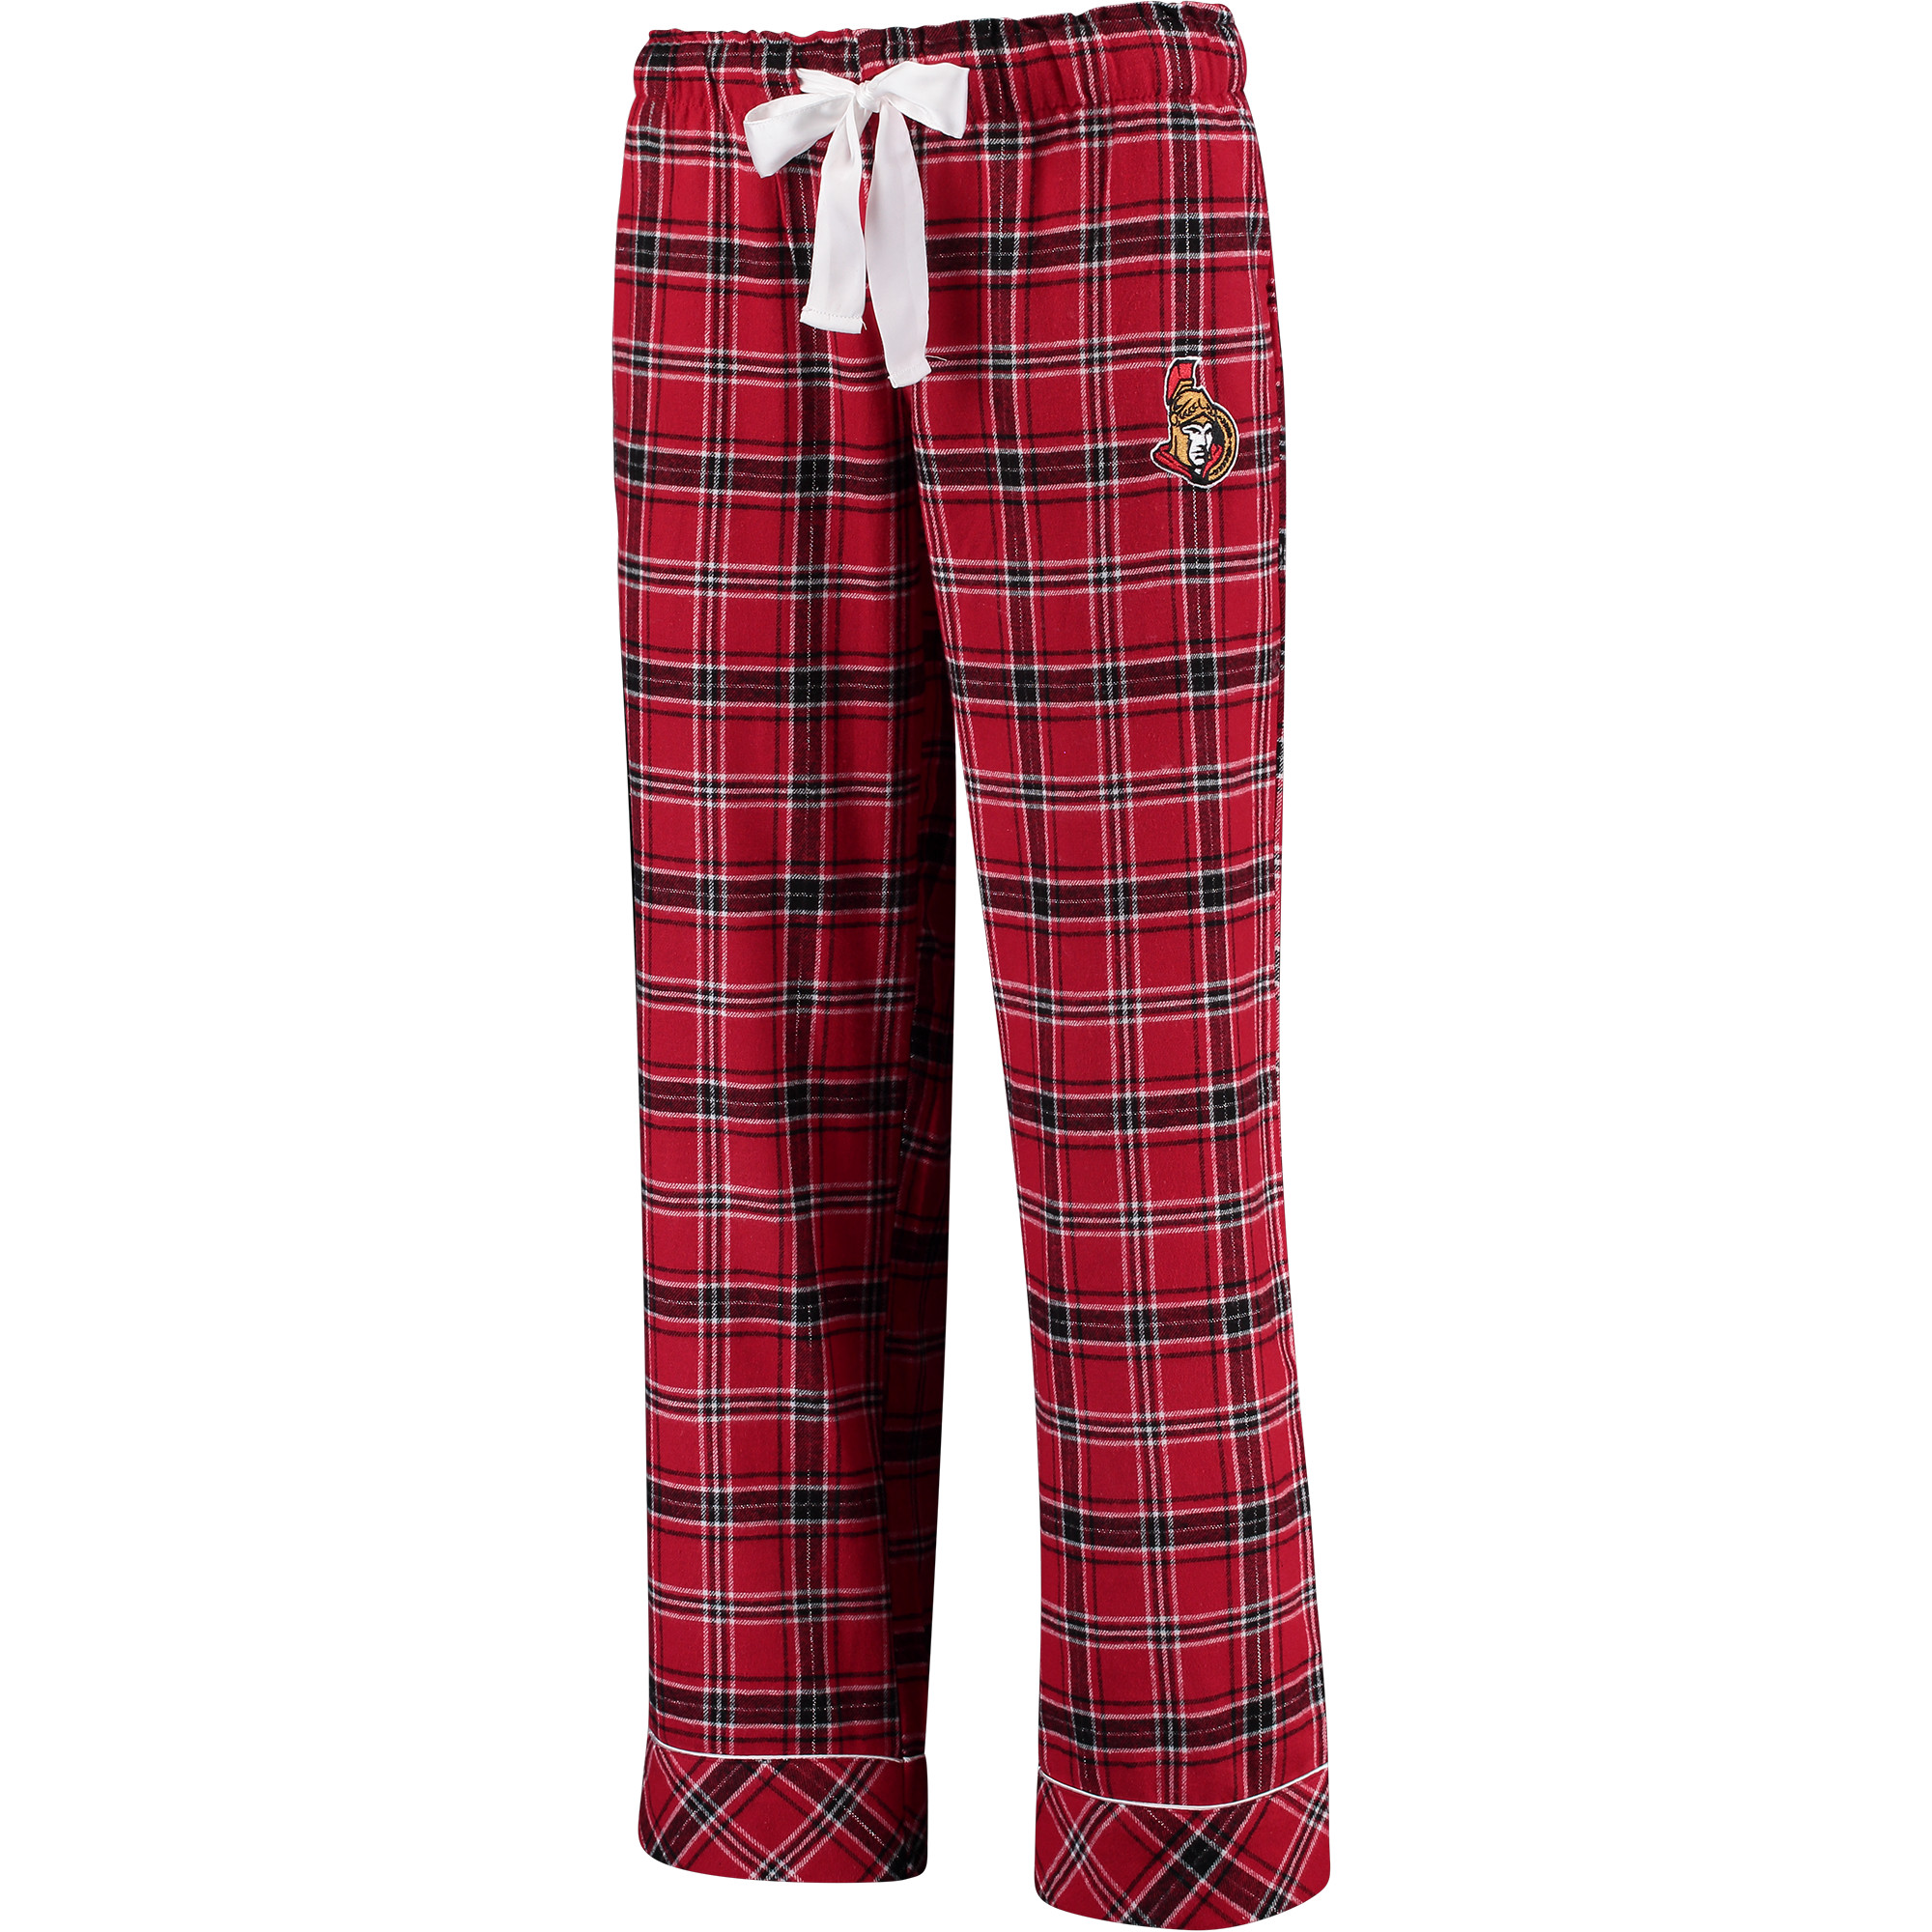 Ottawa Senators Concepts Sport Women's Captivate Plaid Flannel Pajama Pants - Red/Black